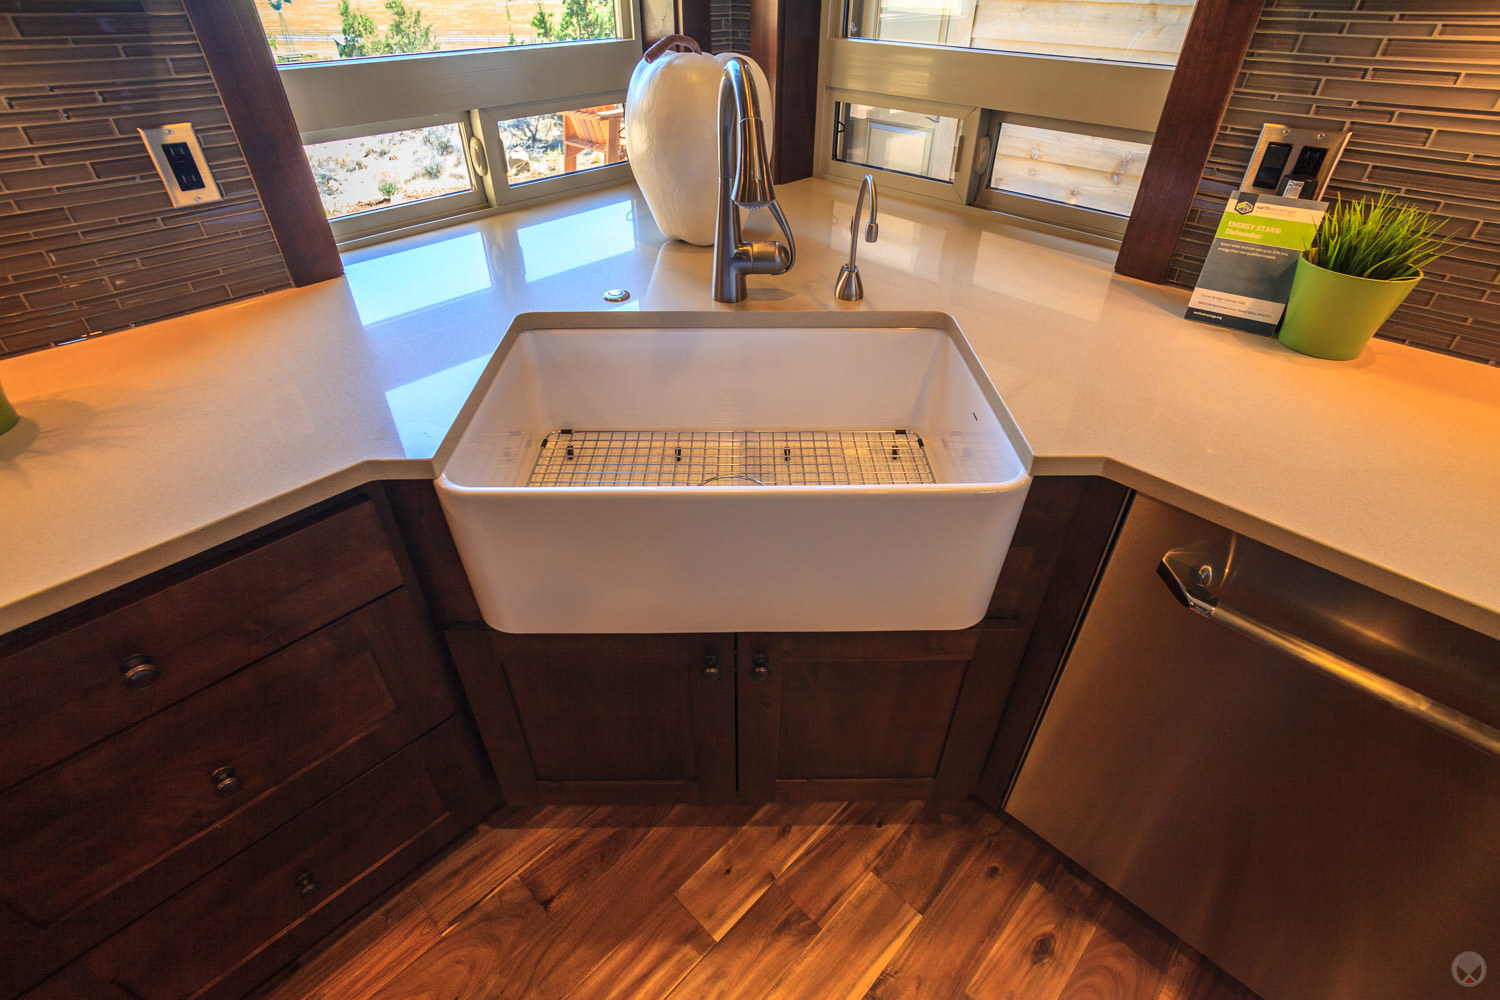 A porcelain farm sink. Also note: Shaker-style cabinets, stainless steel appliances, and subway tile backsplash.